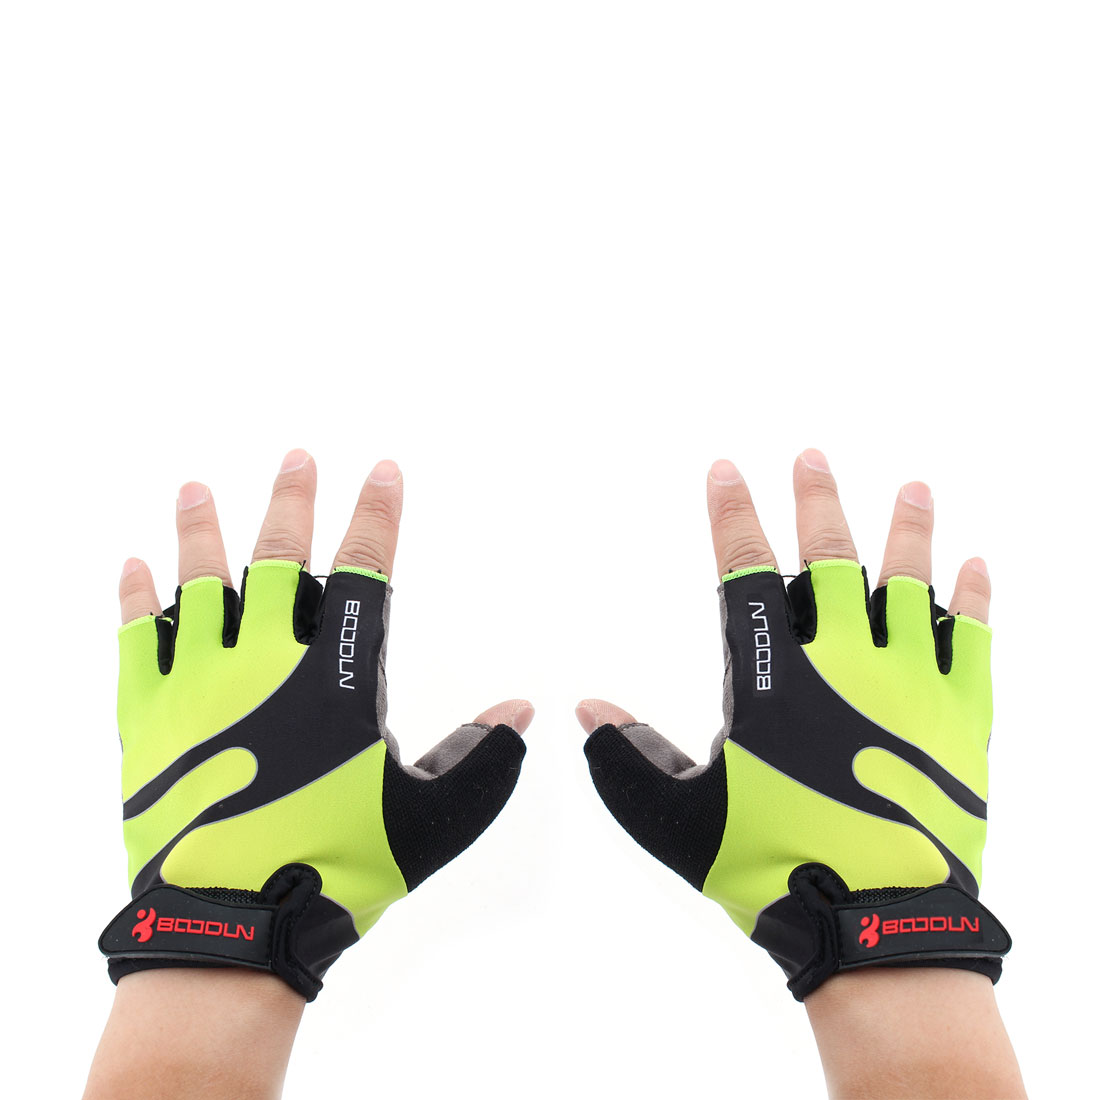 BOODUN Authorized Polyester Exercise Sports Lifting Training Bodybuilding Wrist Protector Half Finger Fitness Gloves Fluorescence Green XXL Pair